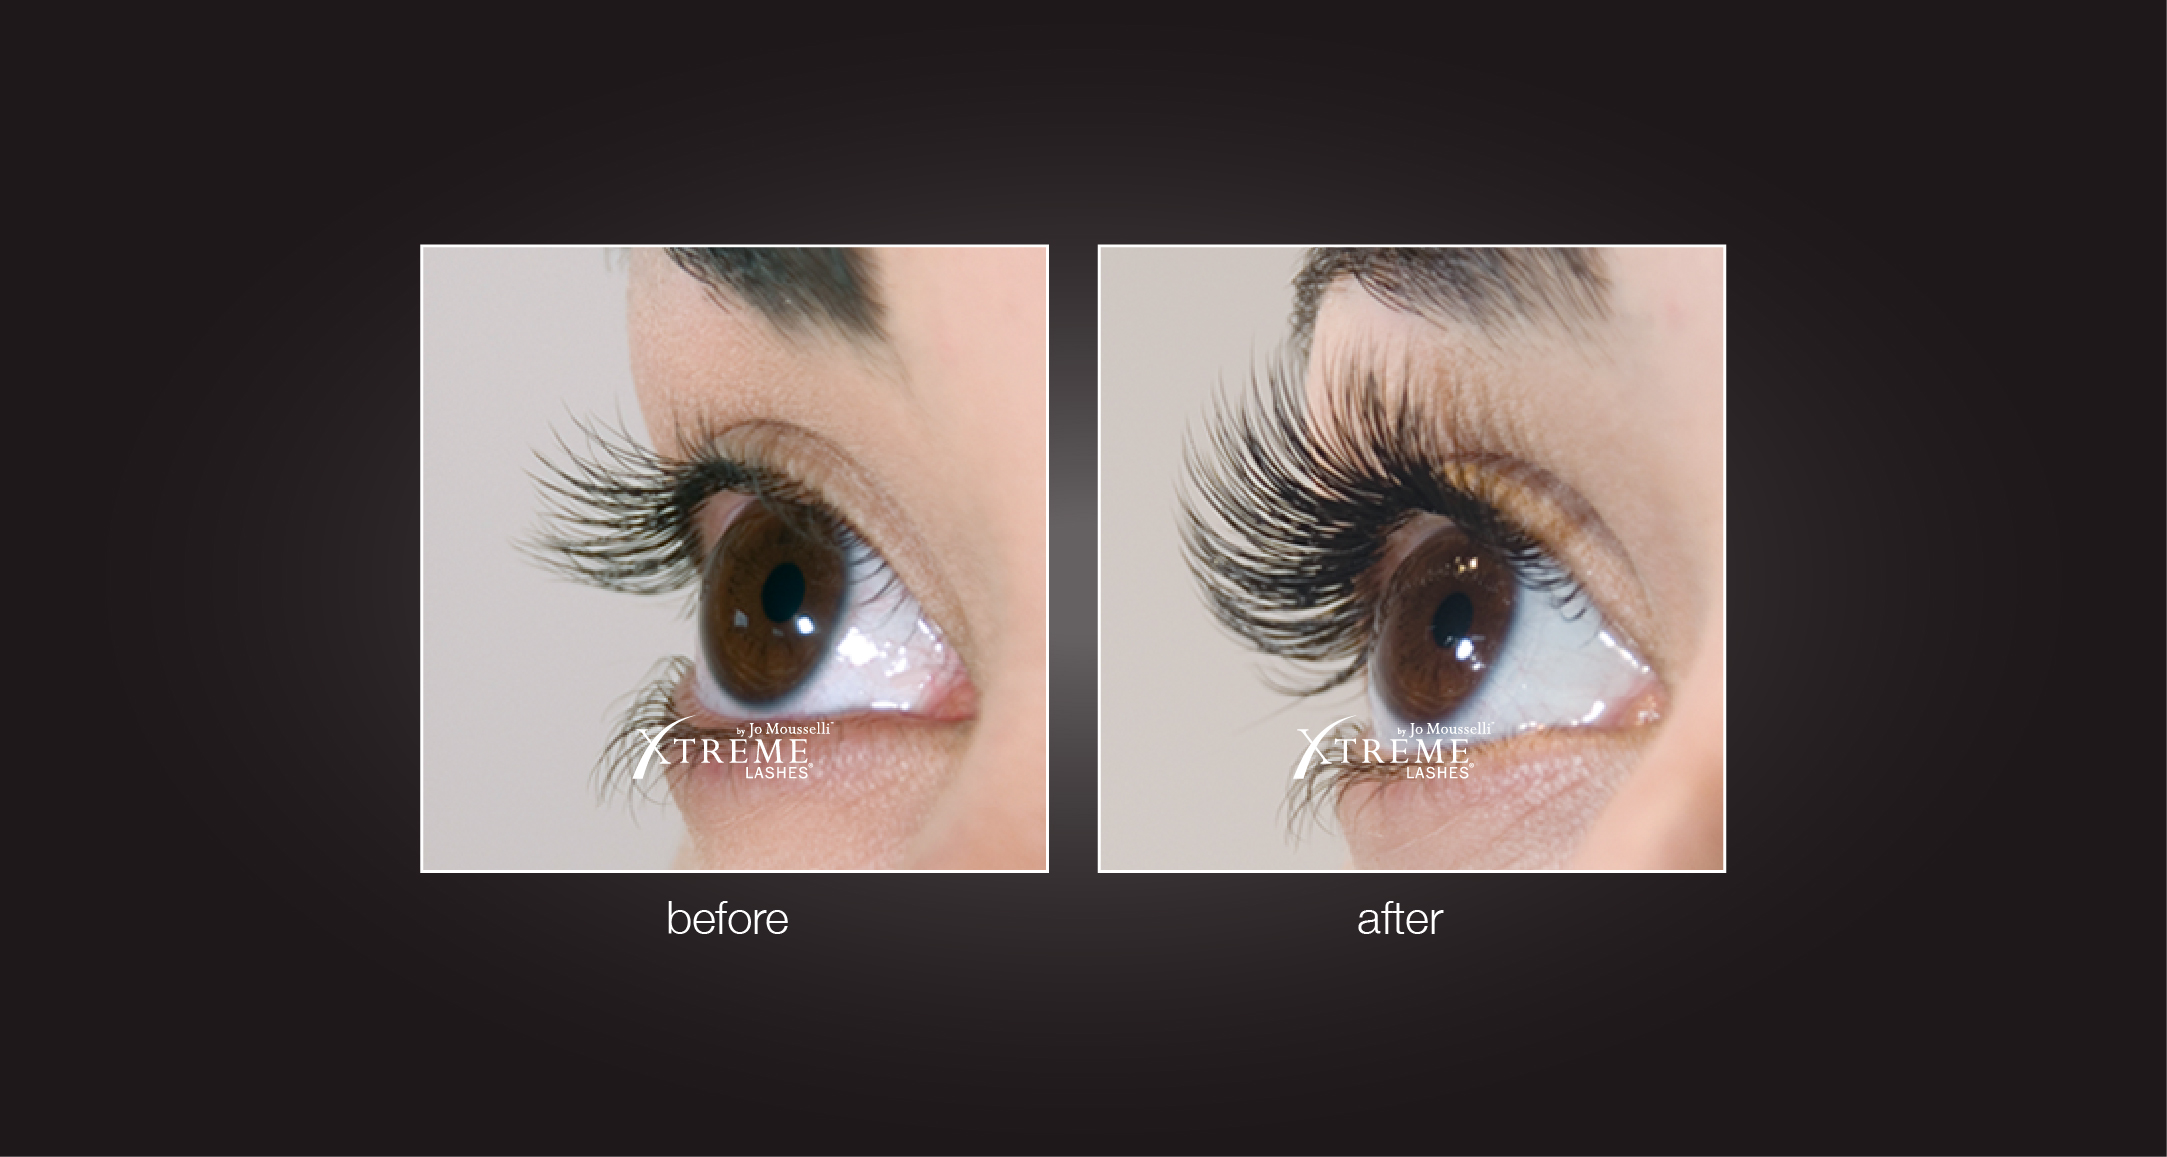 1474bc8221b Xtreme Lashes®, headquartered in Spring, Texas is a luxury brand name in  the eyelash extensions industry and an international industry leader with  the most ...